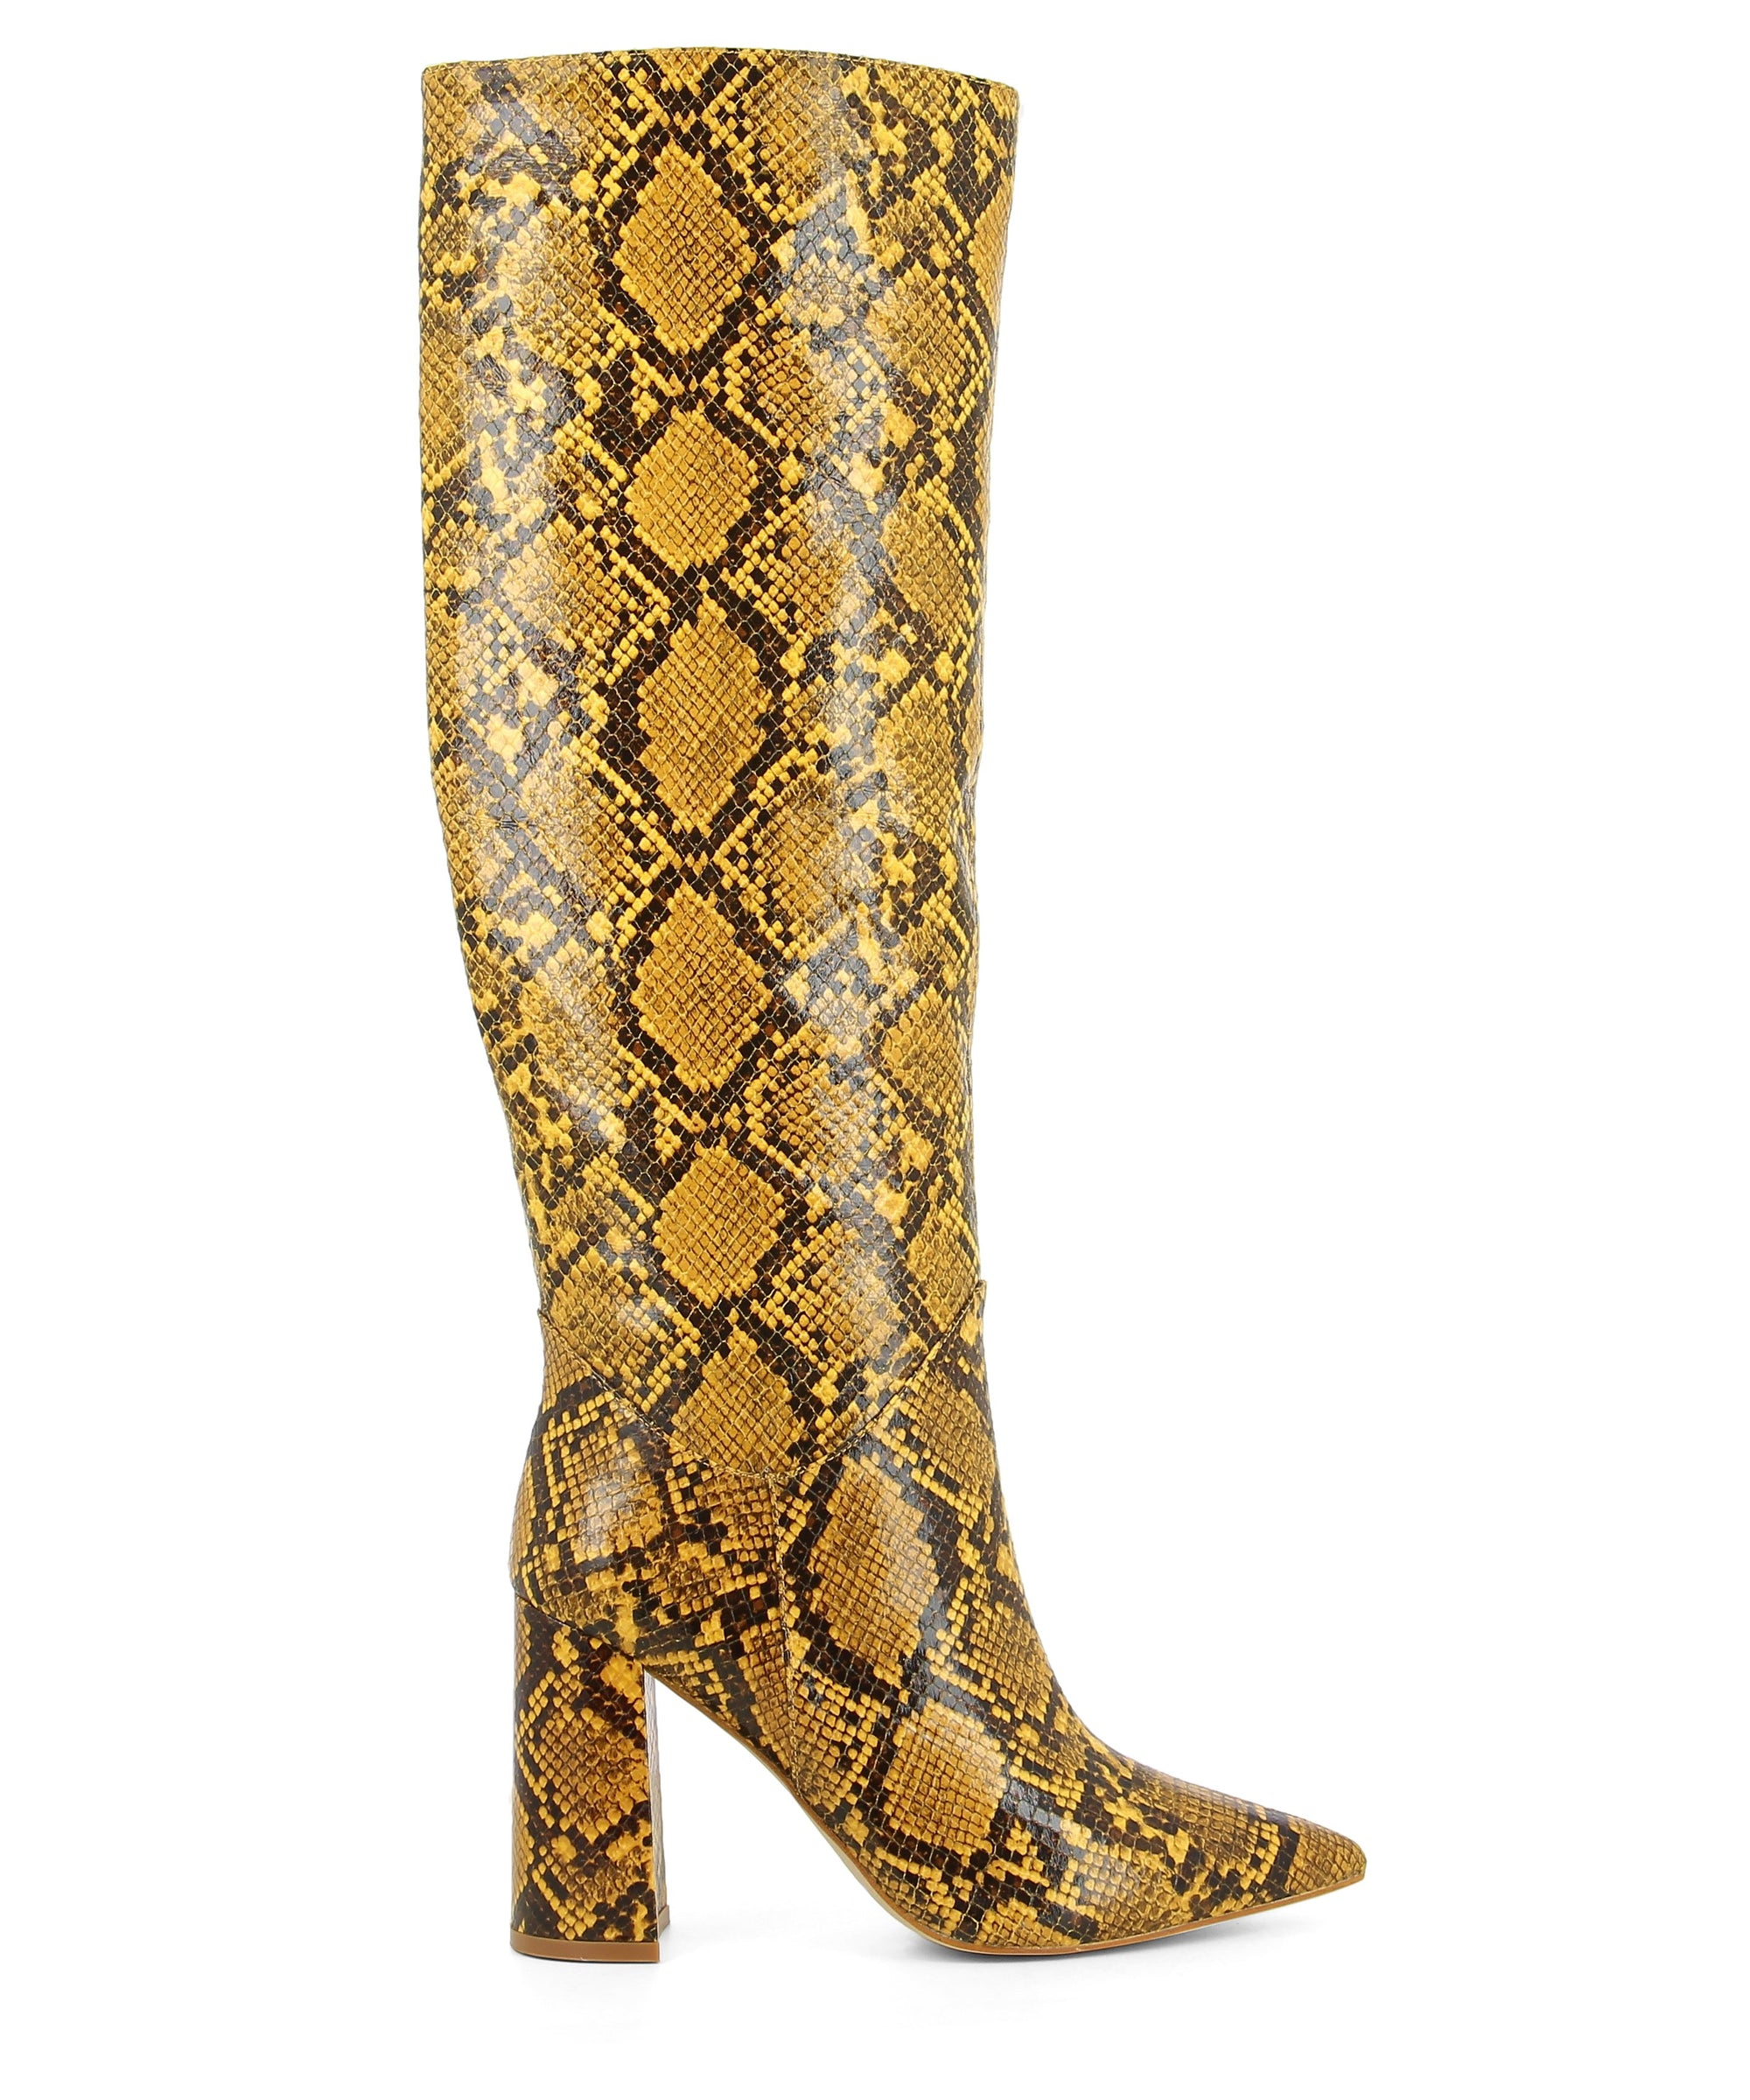 Yellow snake skin knee high boots that feature a 9.5cm block heel, zipper fastening and a pointed toe by Jeffrey Campbell.